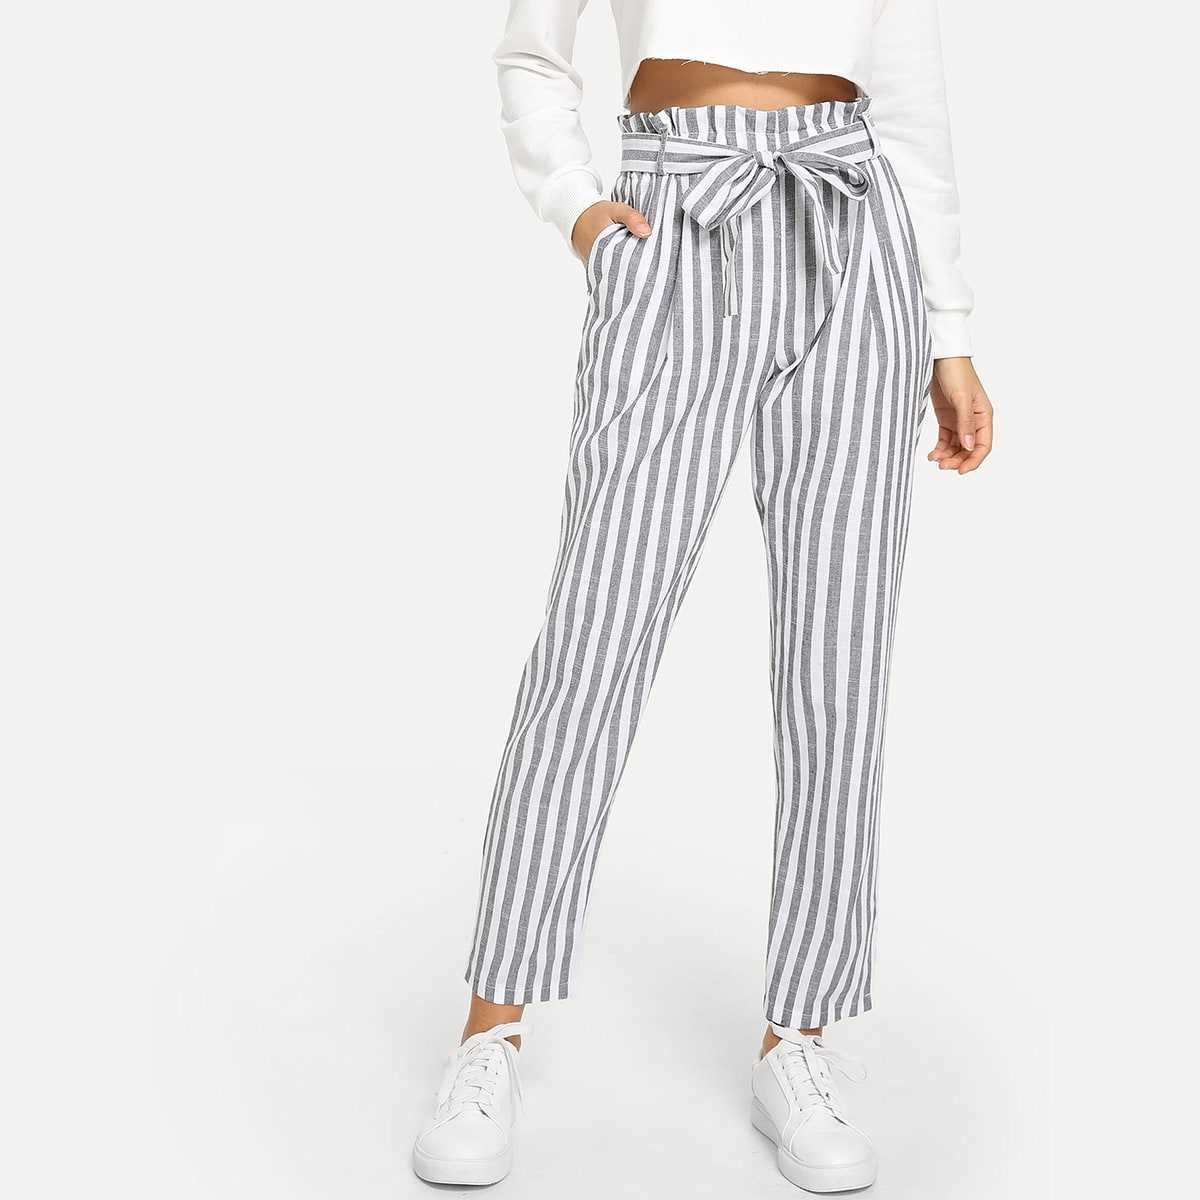 Vertical Striped Frill Belted Pants in Grey by ROMWE on GOOFASH